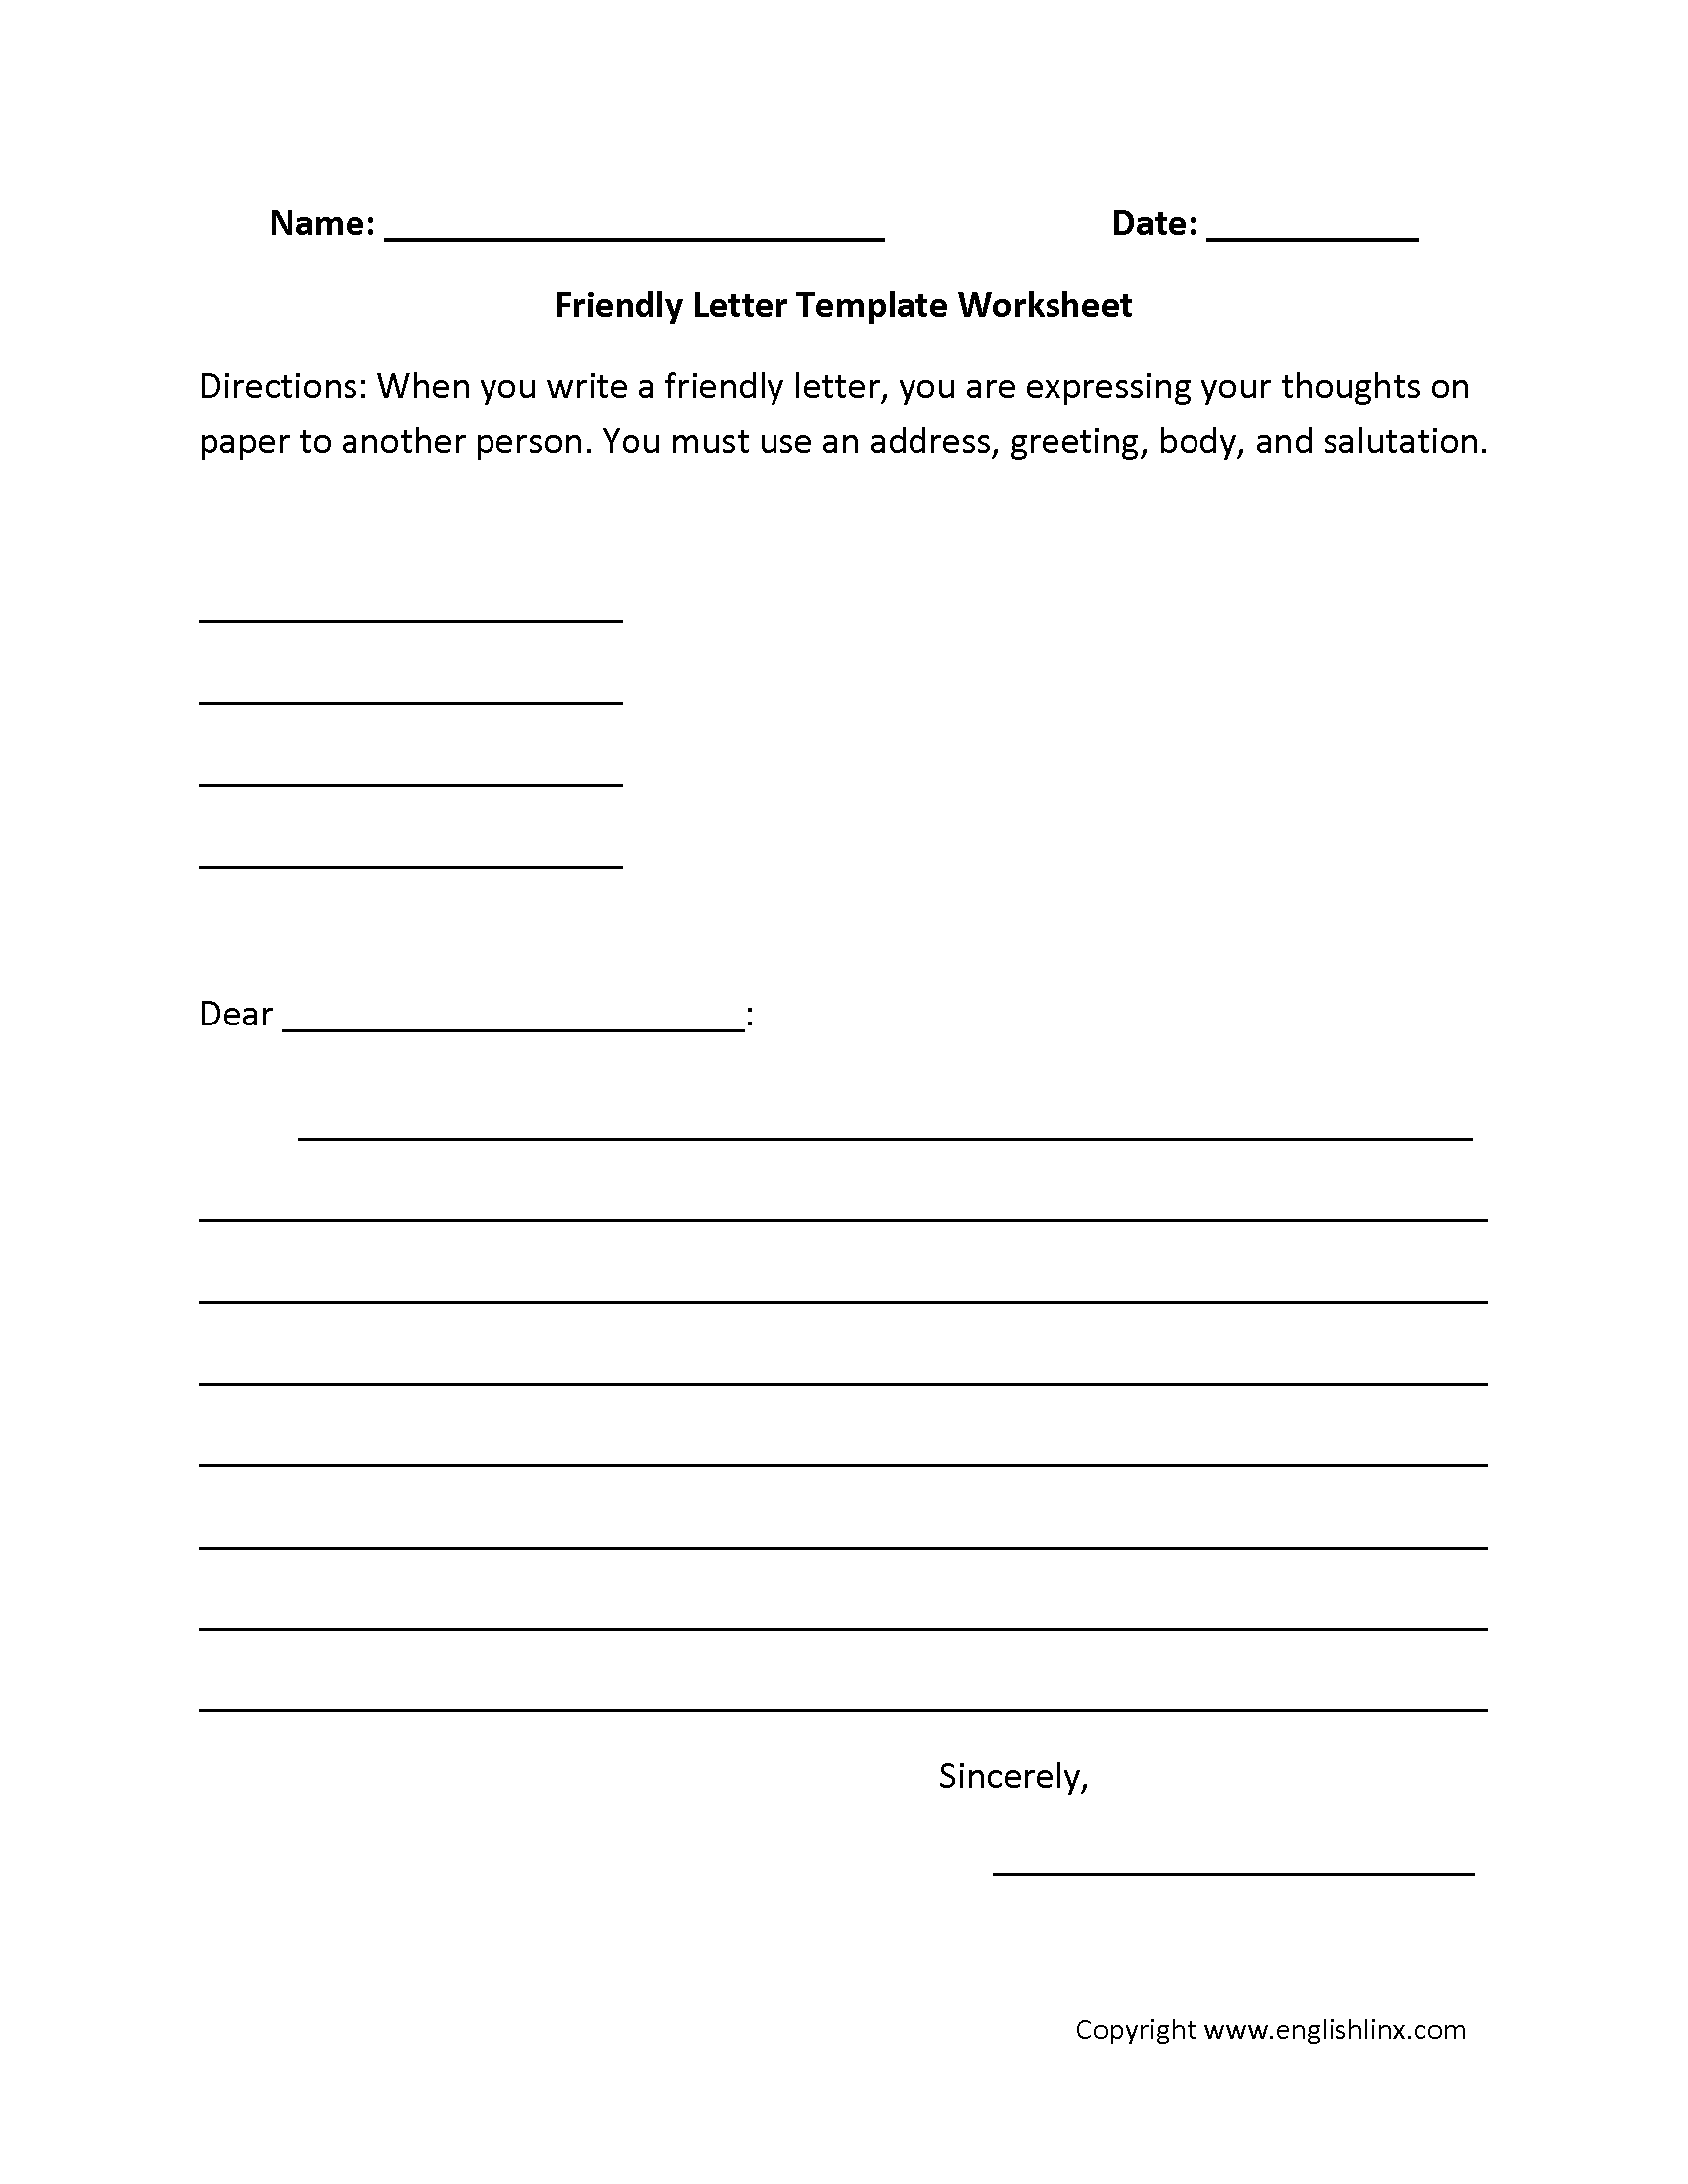 worksheet Parts Of A Letter Worksheet how to write a letter worksheet idea 2018 writing worksheets letter